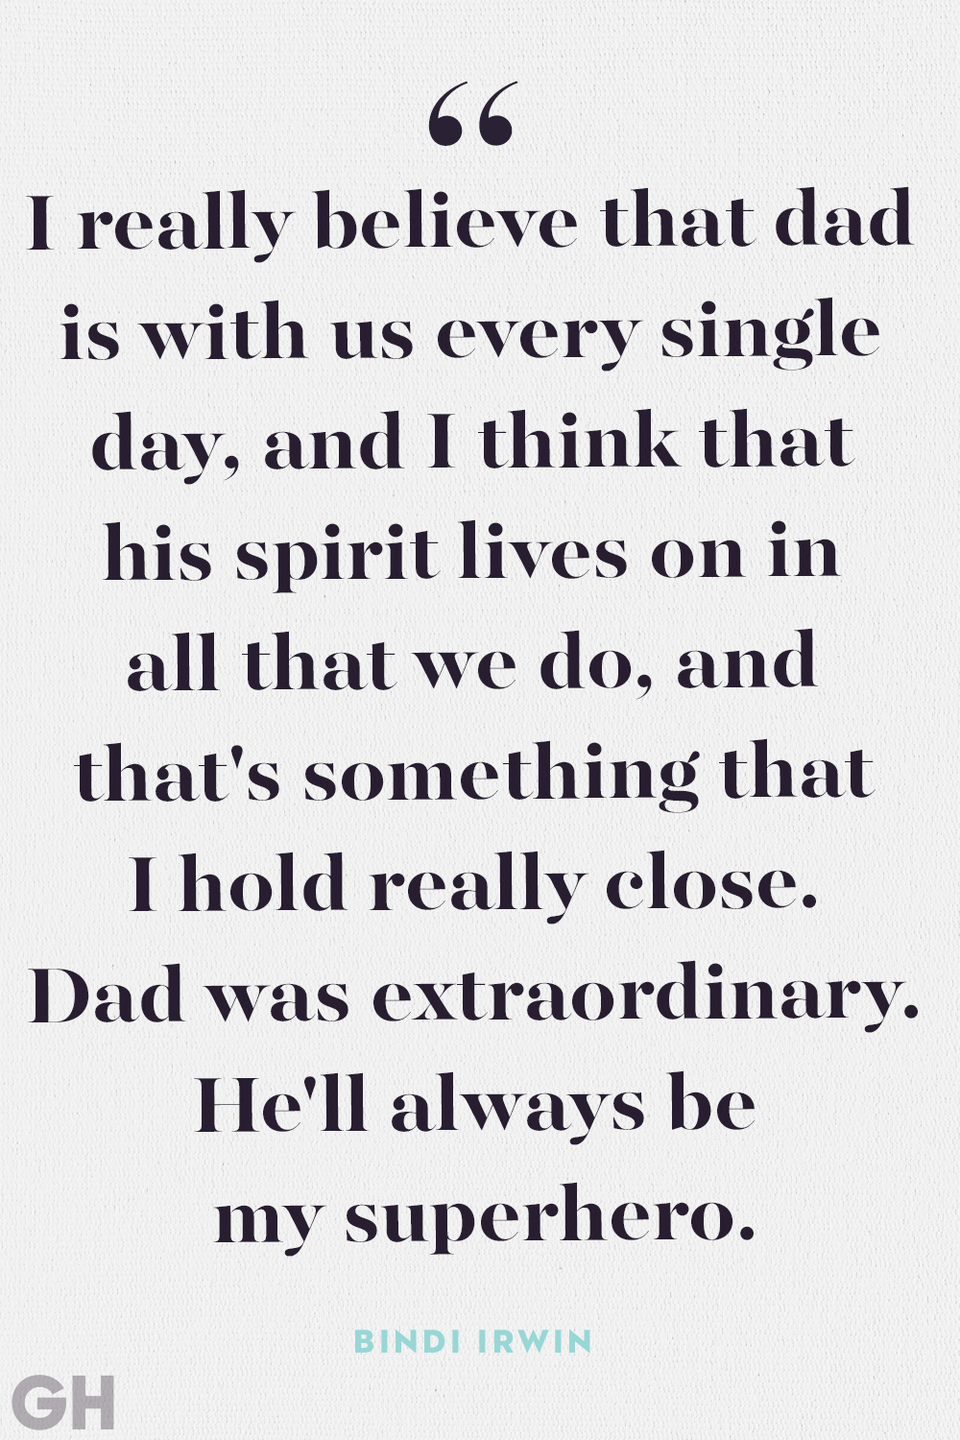 """<p>""""I really believe that dad is with us every single day, and I think that his spirit lives on in all that we do, and that's something that I hold really close. Dad was extraordinary. He'll always be my superhero."""" </p>"""